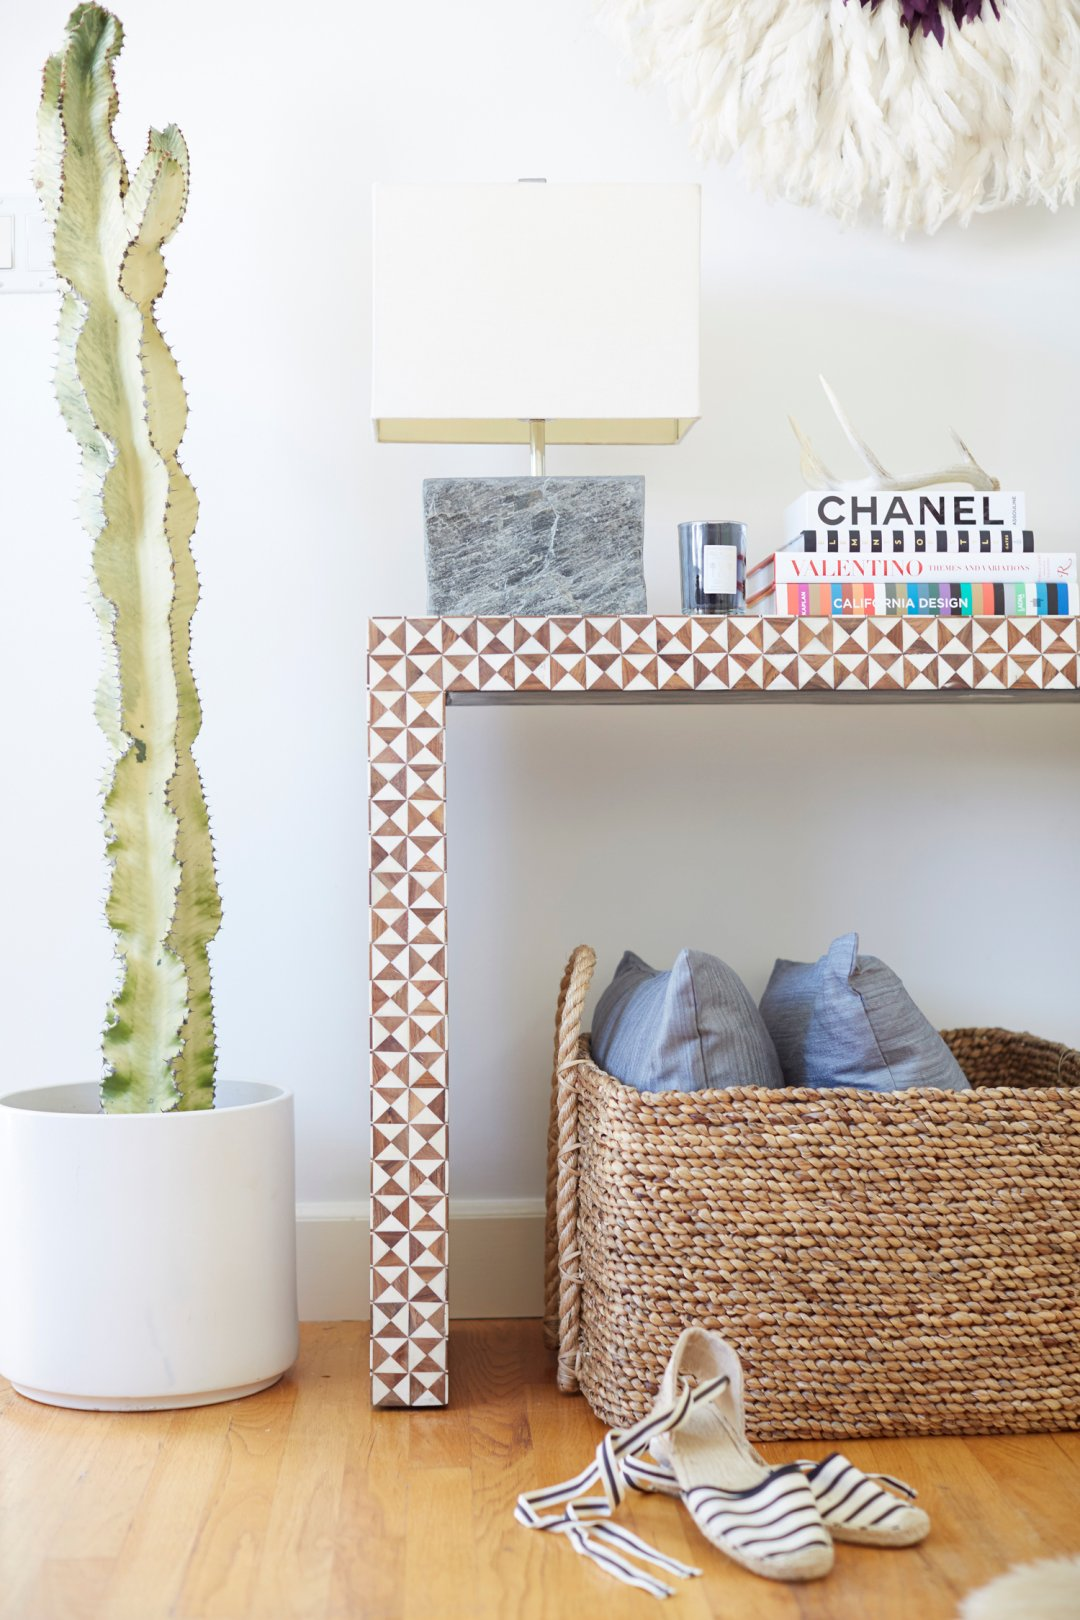 Mixing Styles For Modern Glam Decor Crate And Barrel Blog